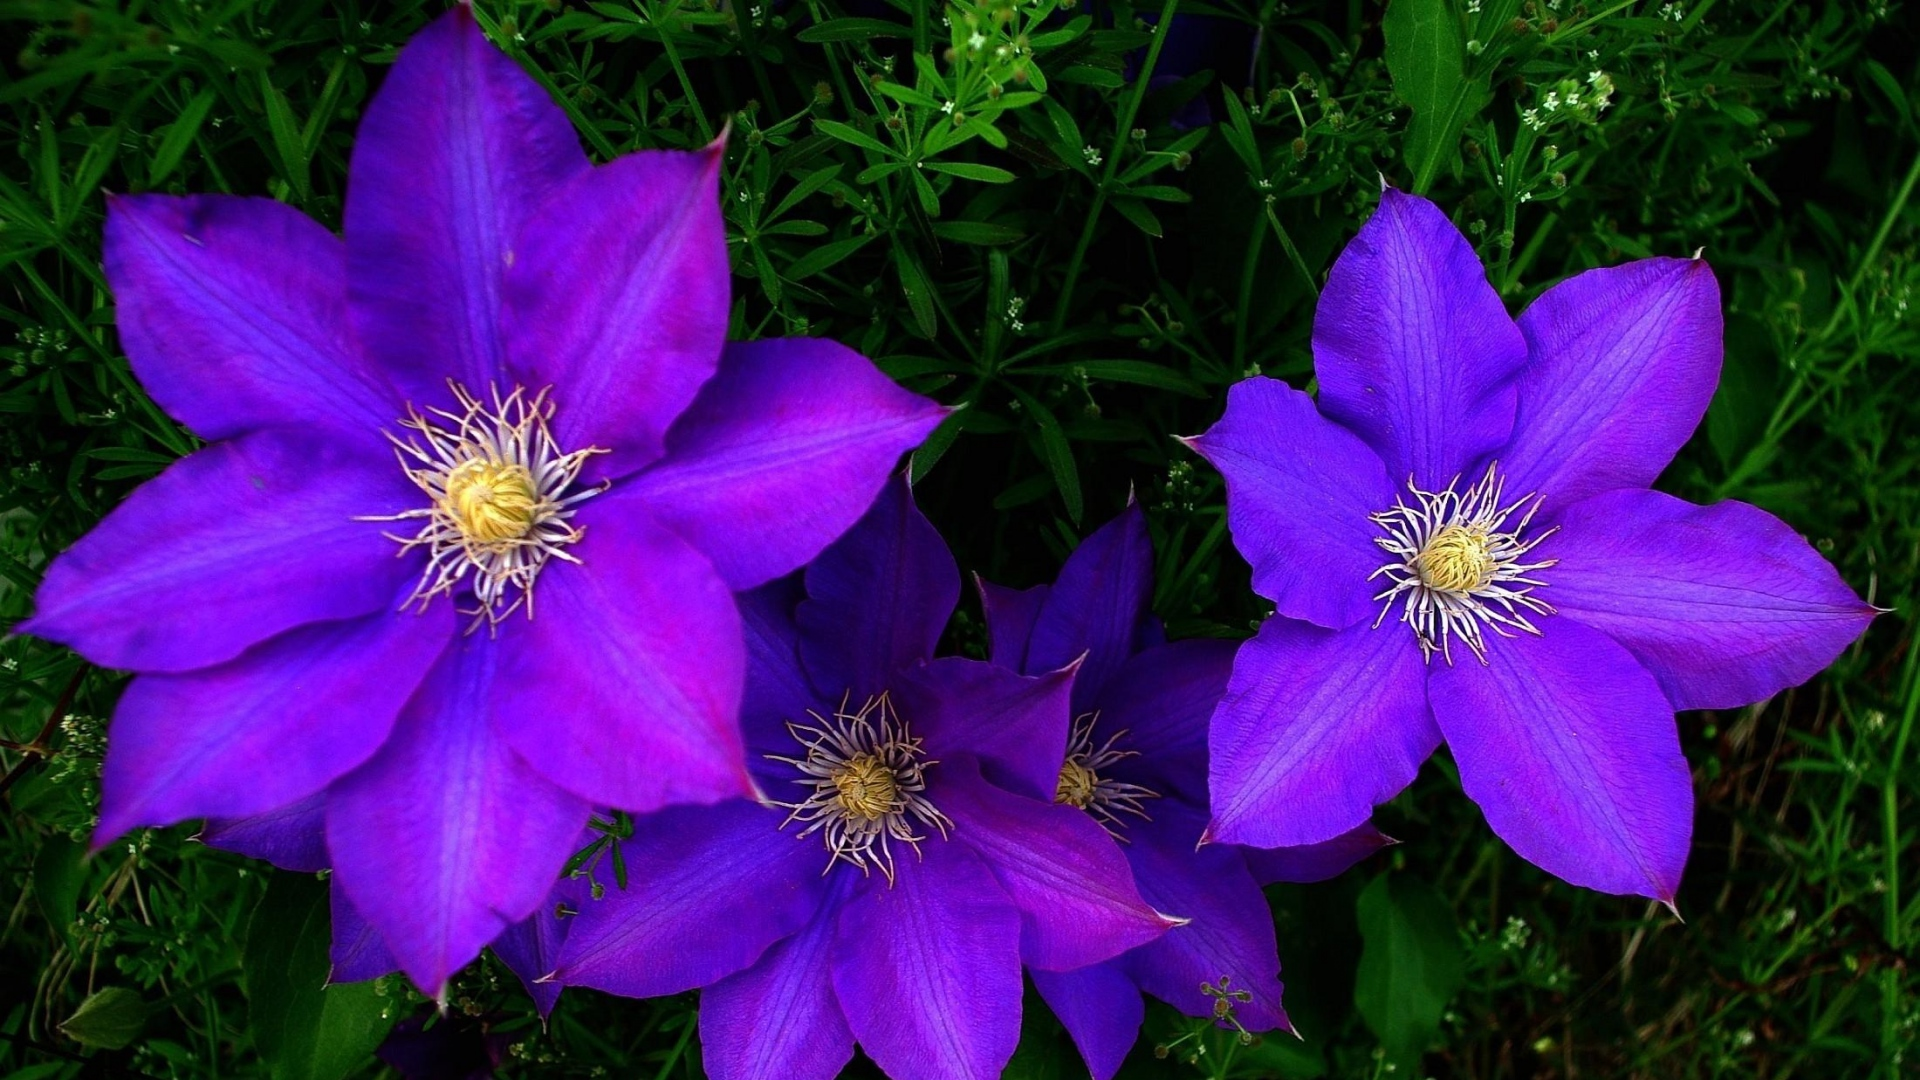 clematis flowers bright purple green images download